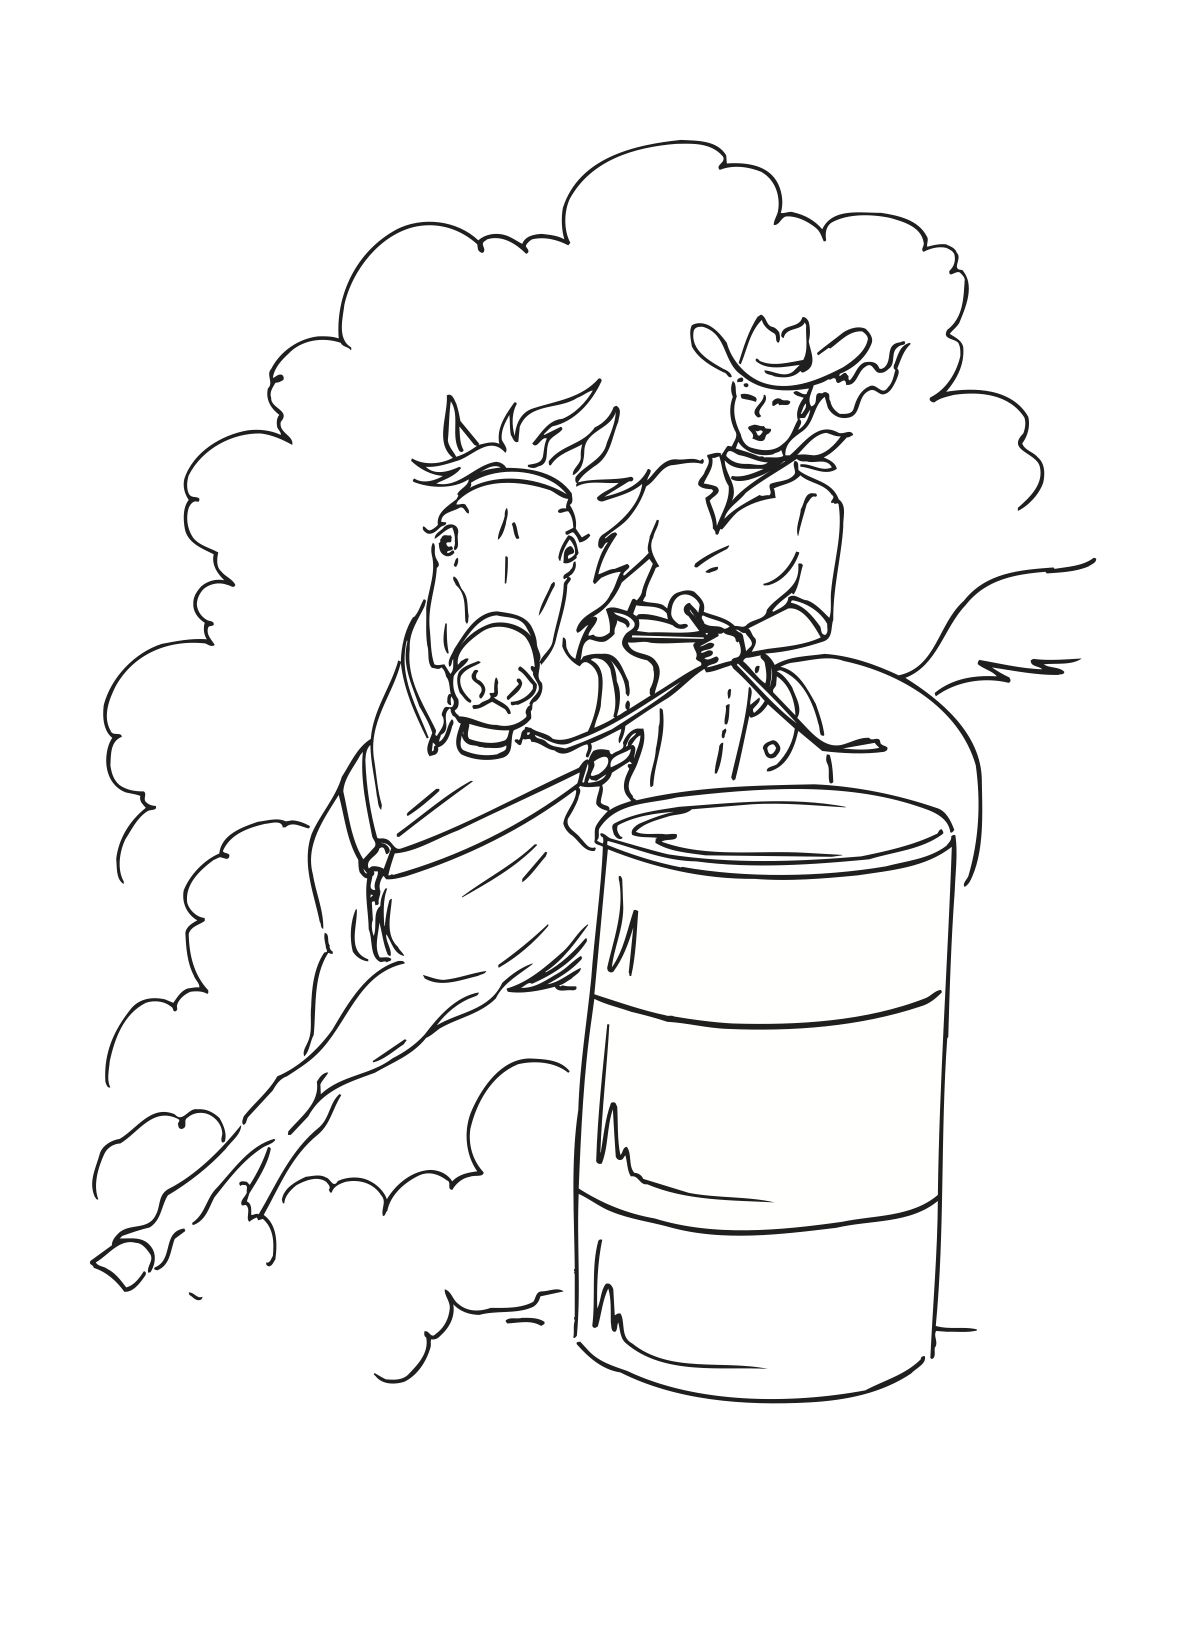 Co co coloring pages of a cowgirl - Coloring Pages Barrel Racing Is A Rodeo Event In Which A Horse And Rider Attempt To Complete A